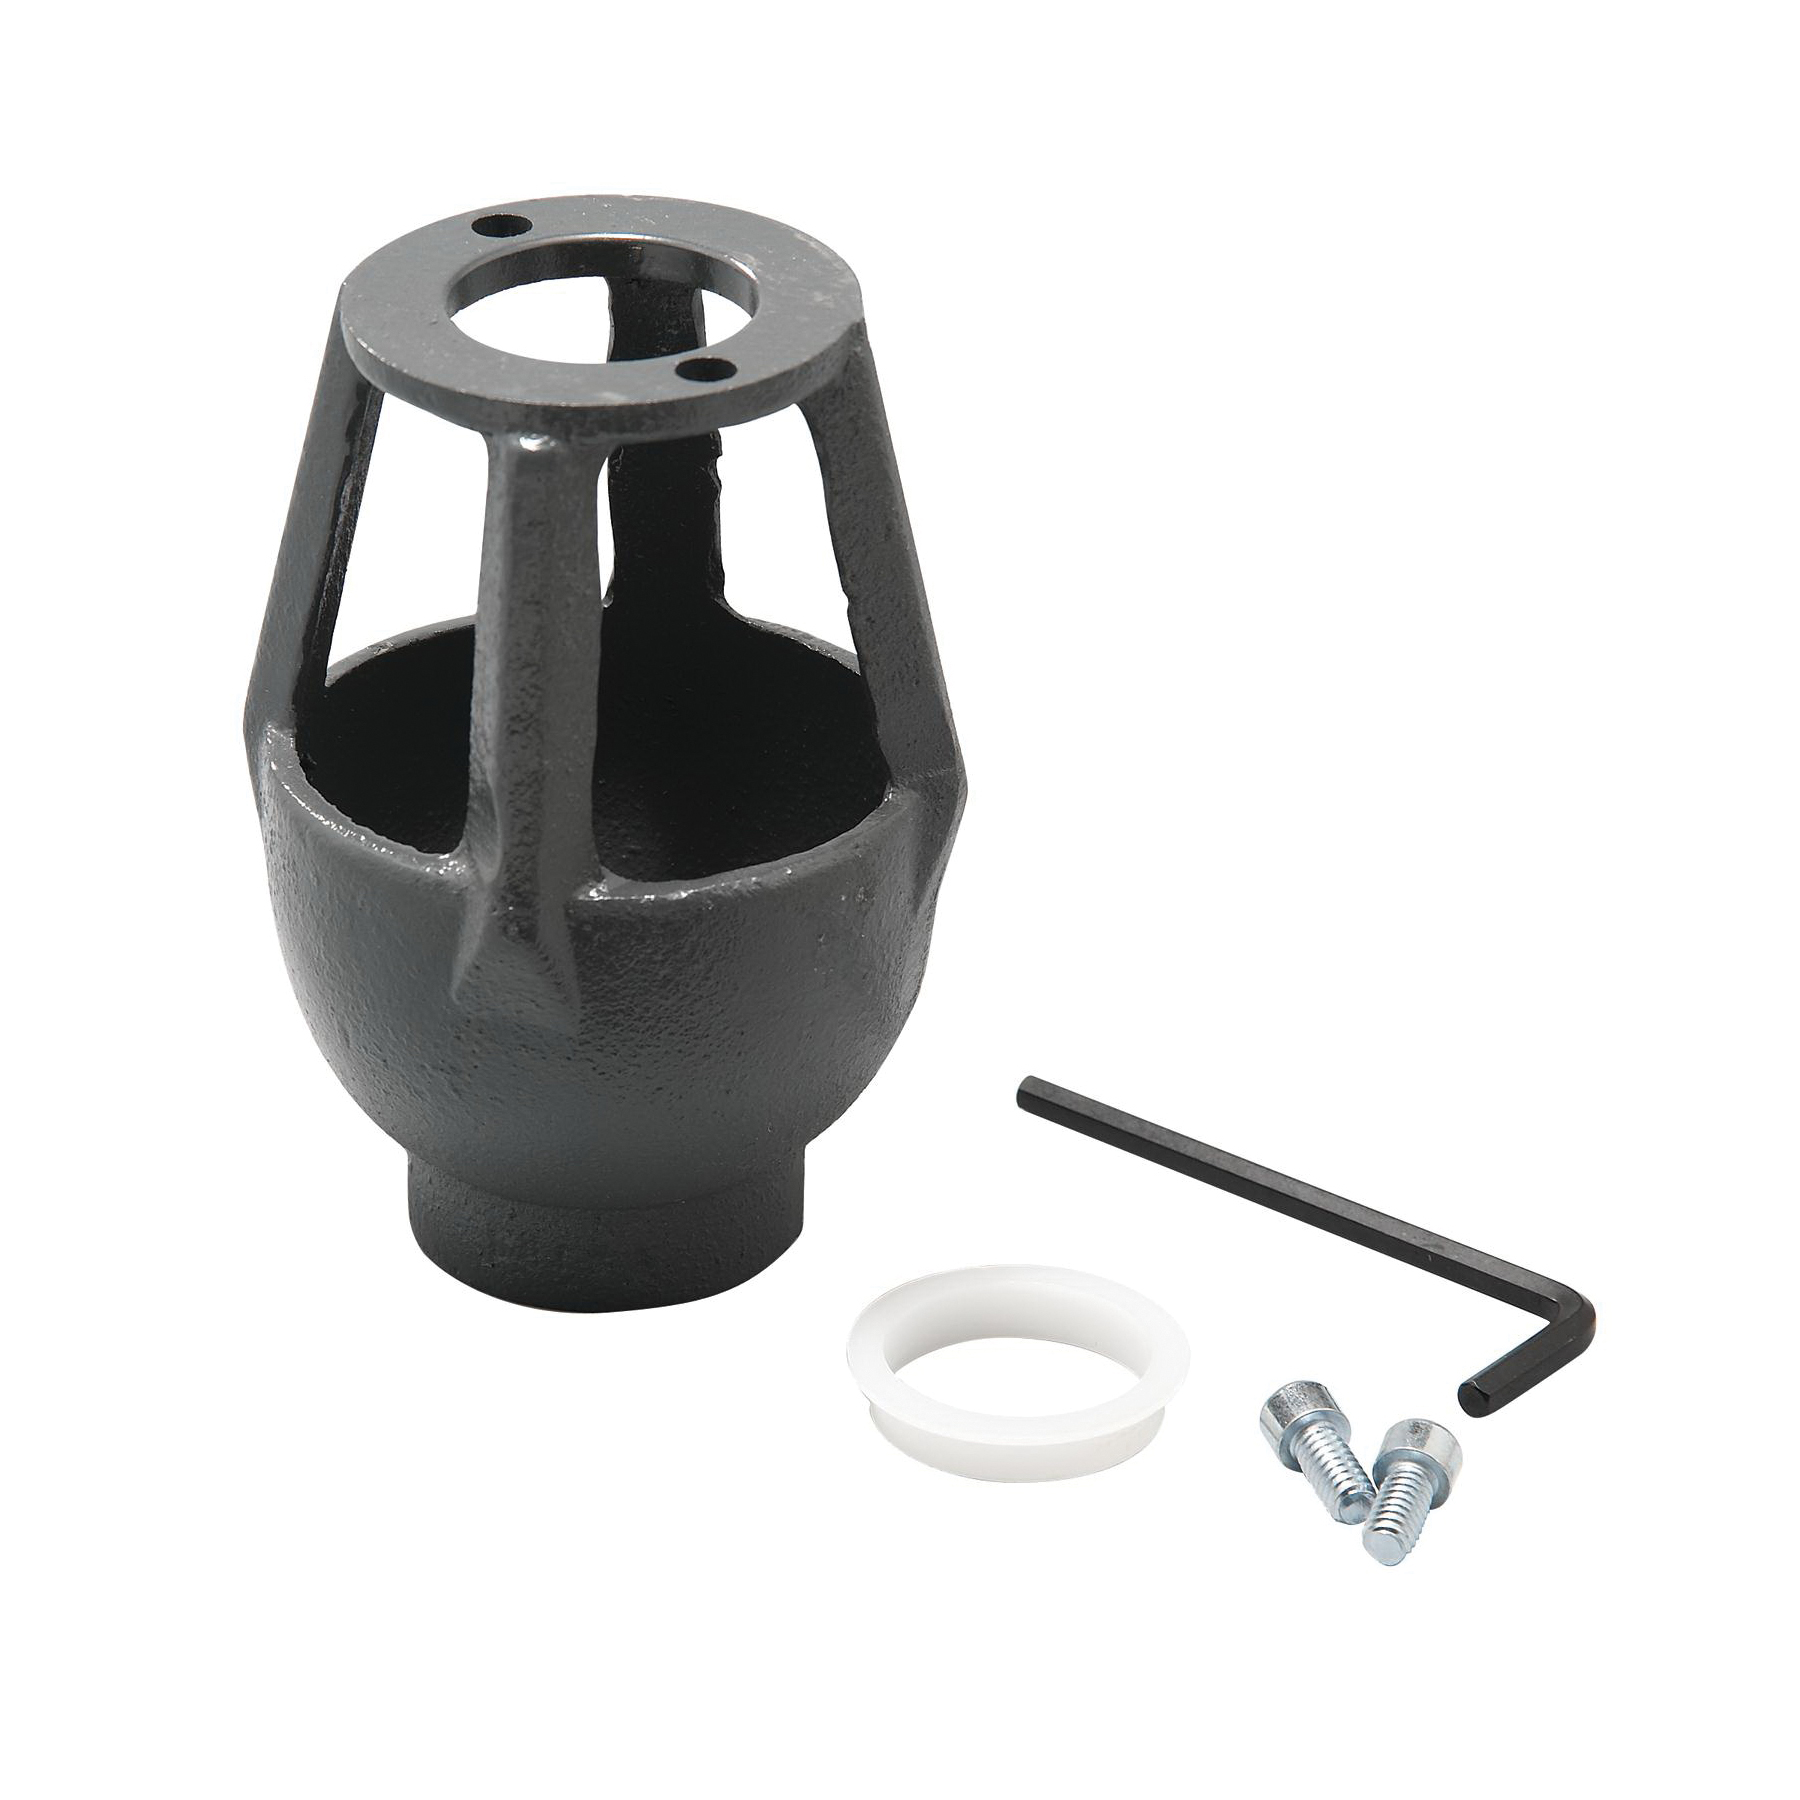 WATTS® 0881376 909AGC Air Gap, For Use With: Model 009/909/LF909 3/4 to 1 in Reduced Pressure Zone Assembly, 009/LF009M2 1 to 1-1/2 in Reduced Pressure Zone Assembly and 1-1/4 to 2 in Reduced Pressure Zone Assembly, 1 in FNPT, Cast Iron, Import